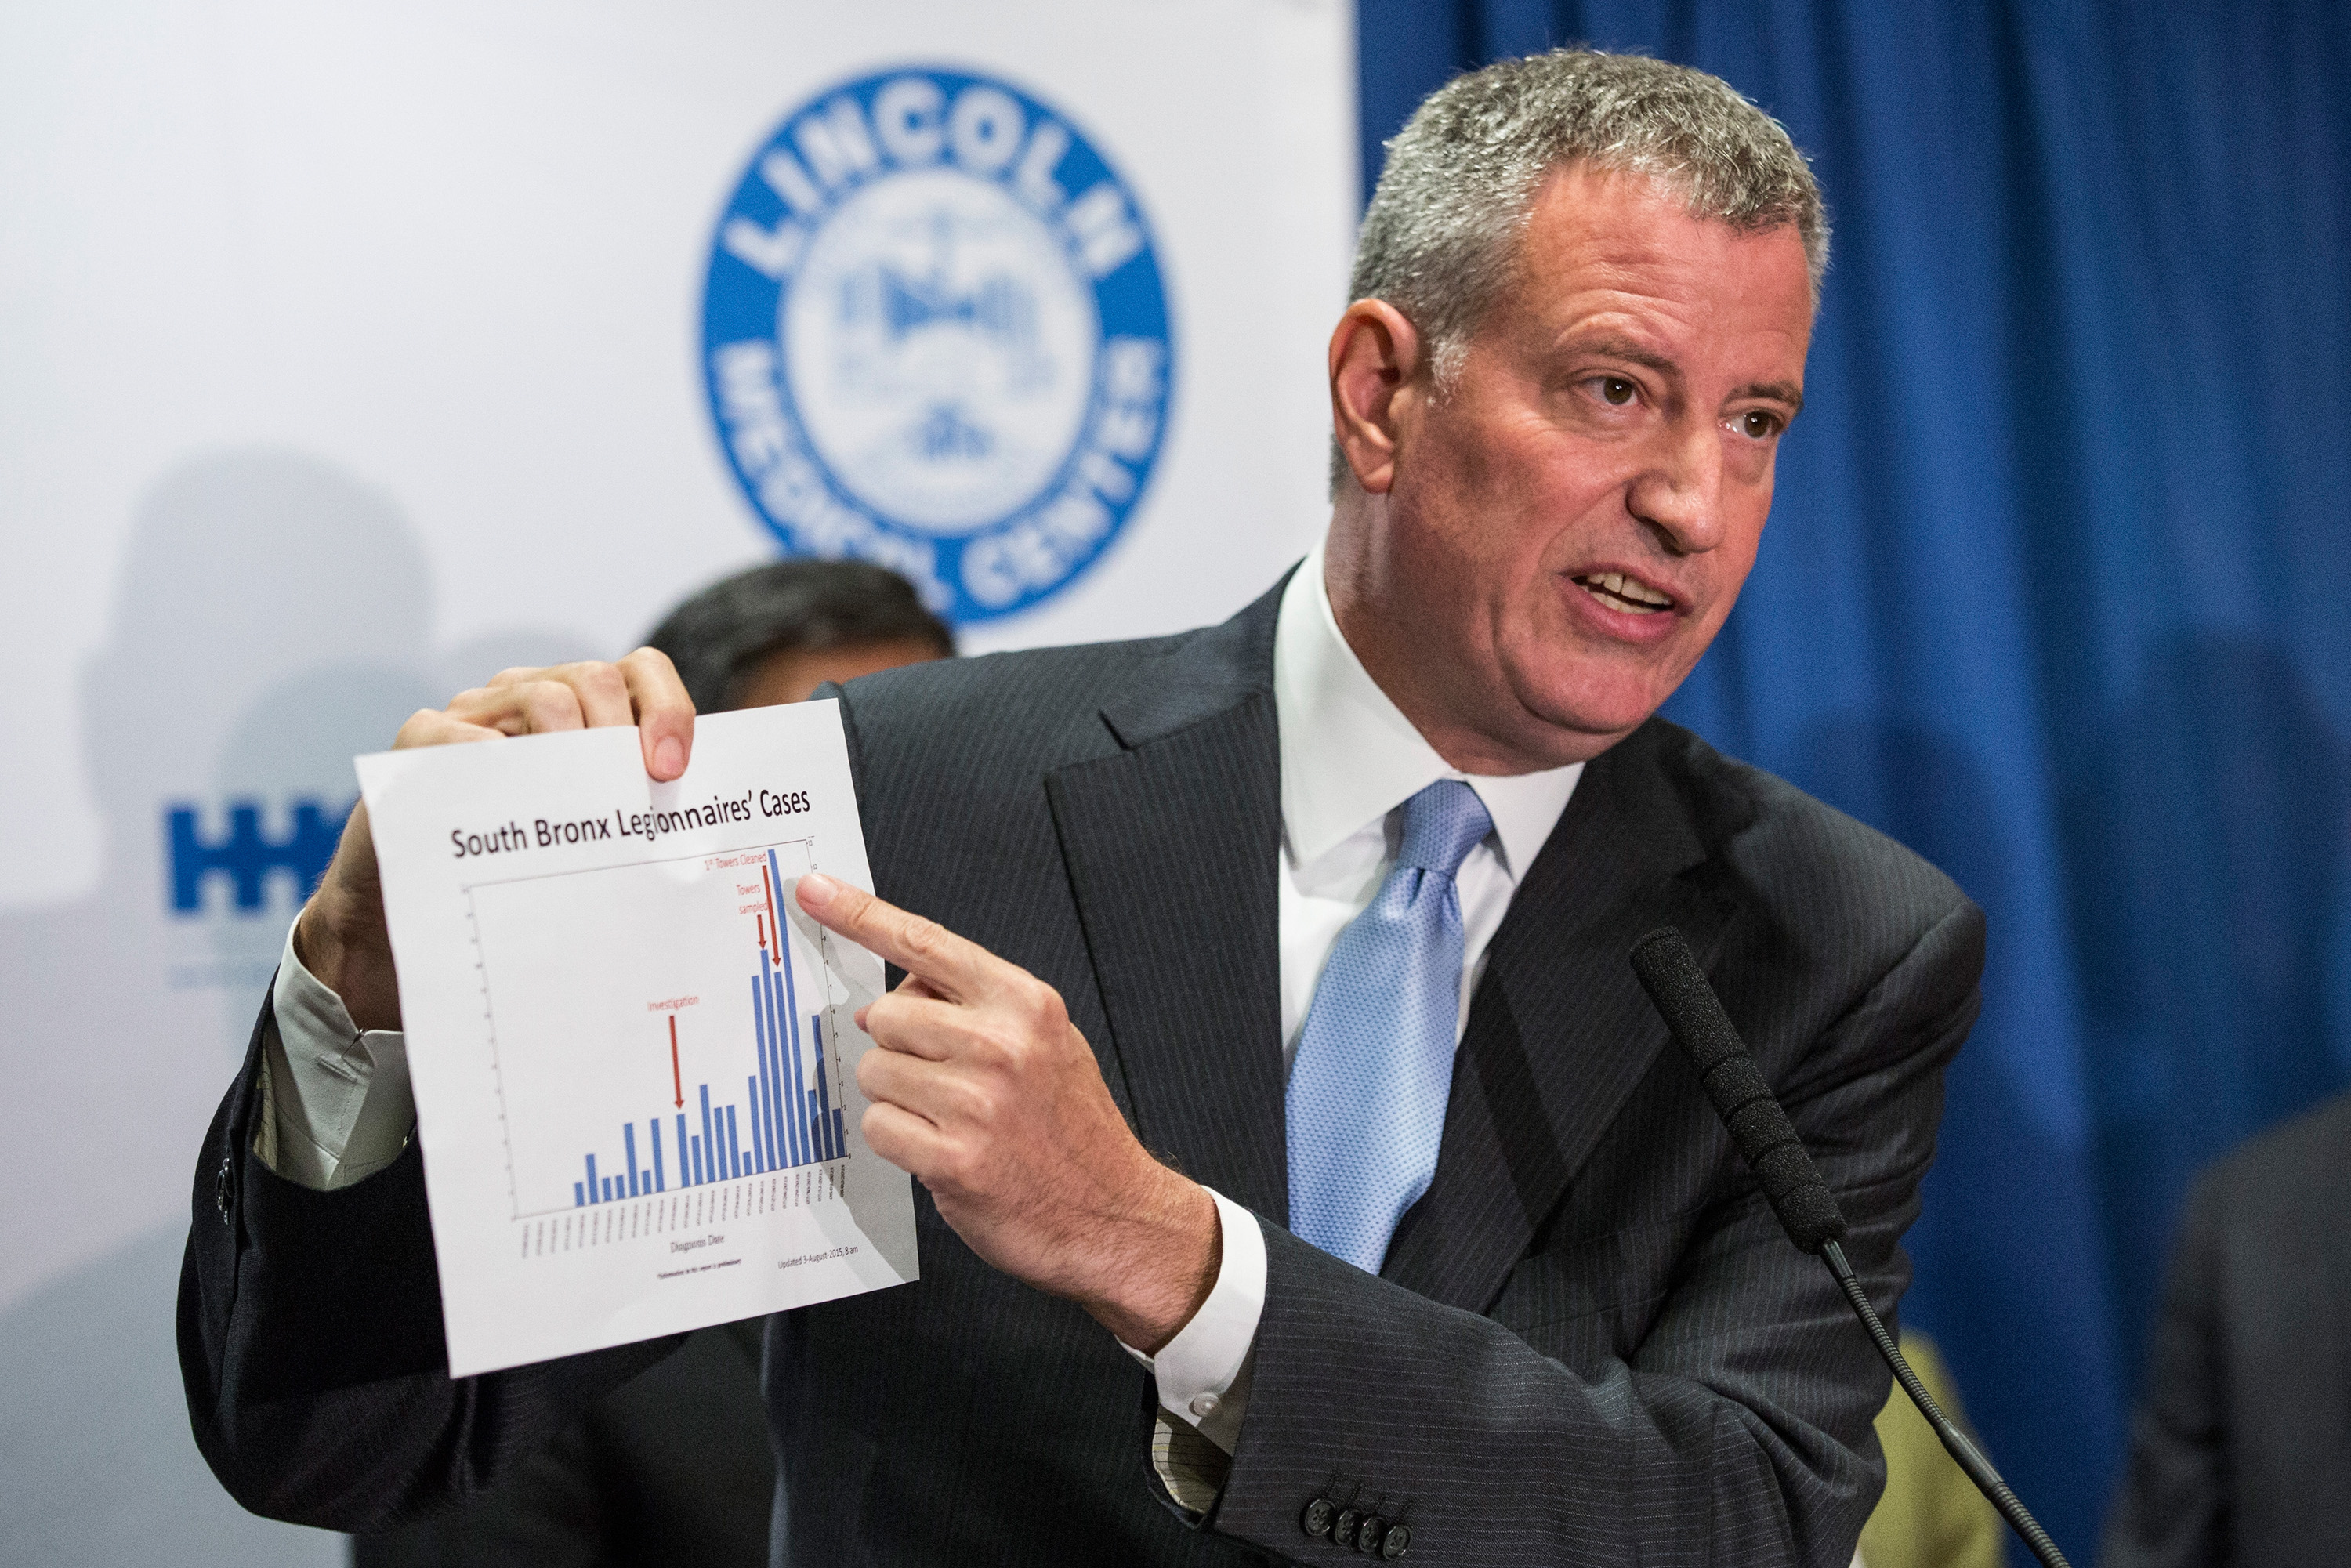 Mayor Bill de Blasio speaks at a press conference to address the Legionnaire's disease outbreak earlier this month. (Photo by Andrew Burton/Getty Images)